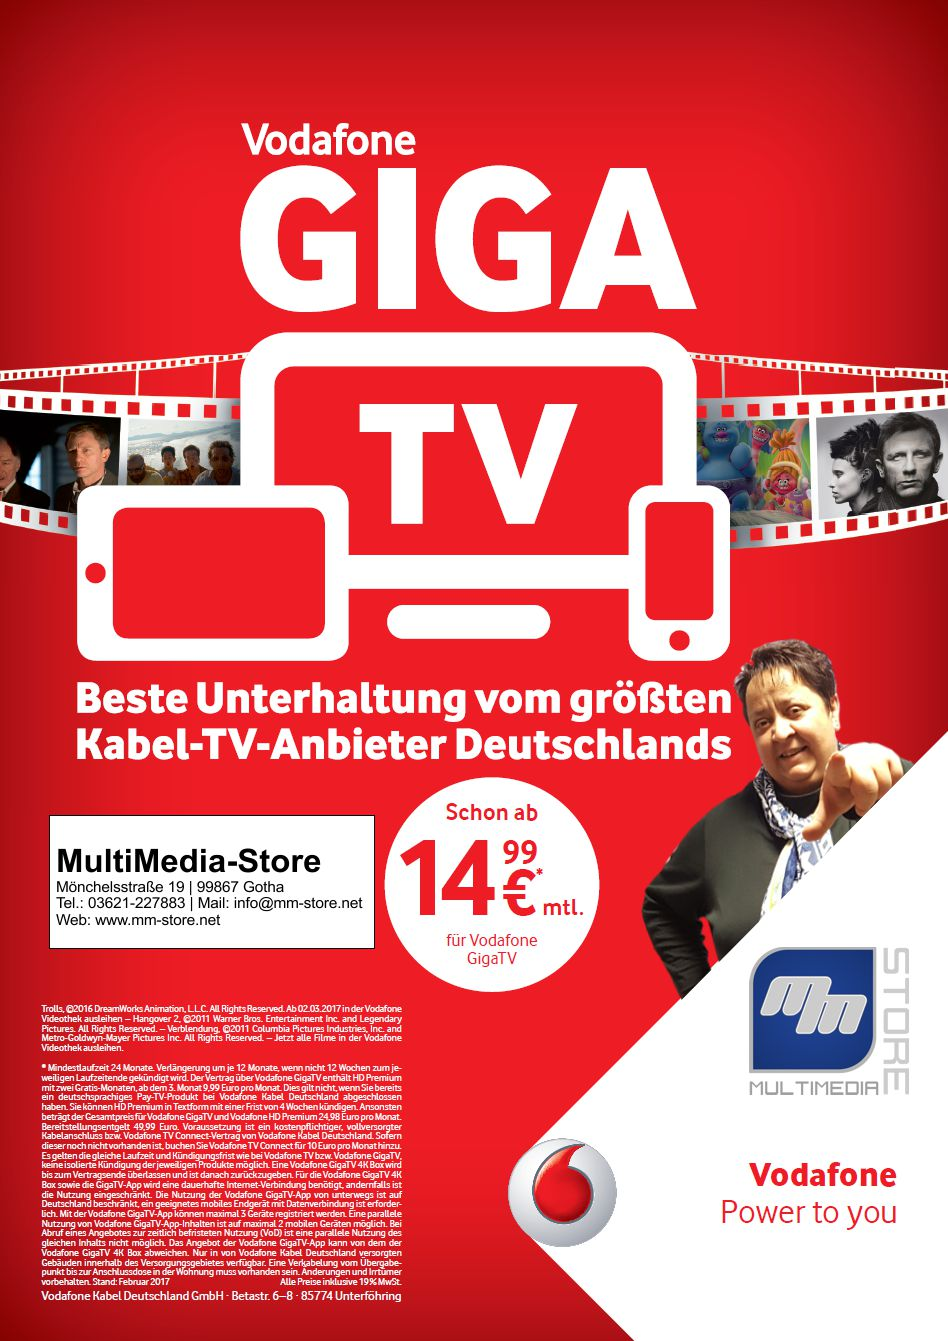 gigatv 4k box von vodafone kabel deutschland multimedia store gotha. Black Bedroom Furniture Sets. Home Design Ideas